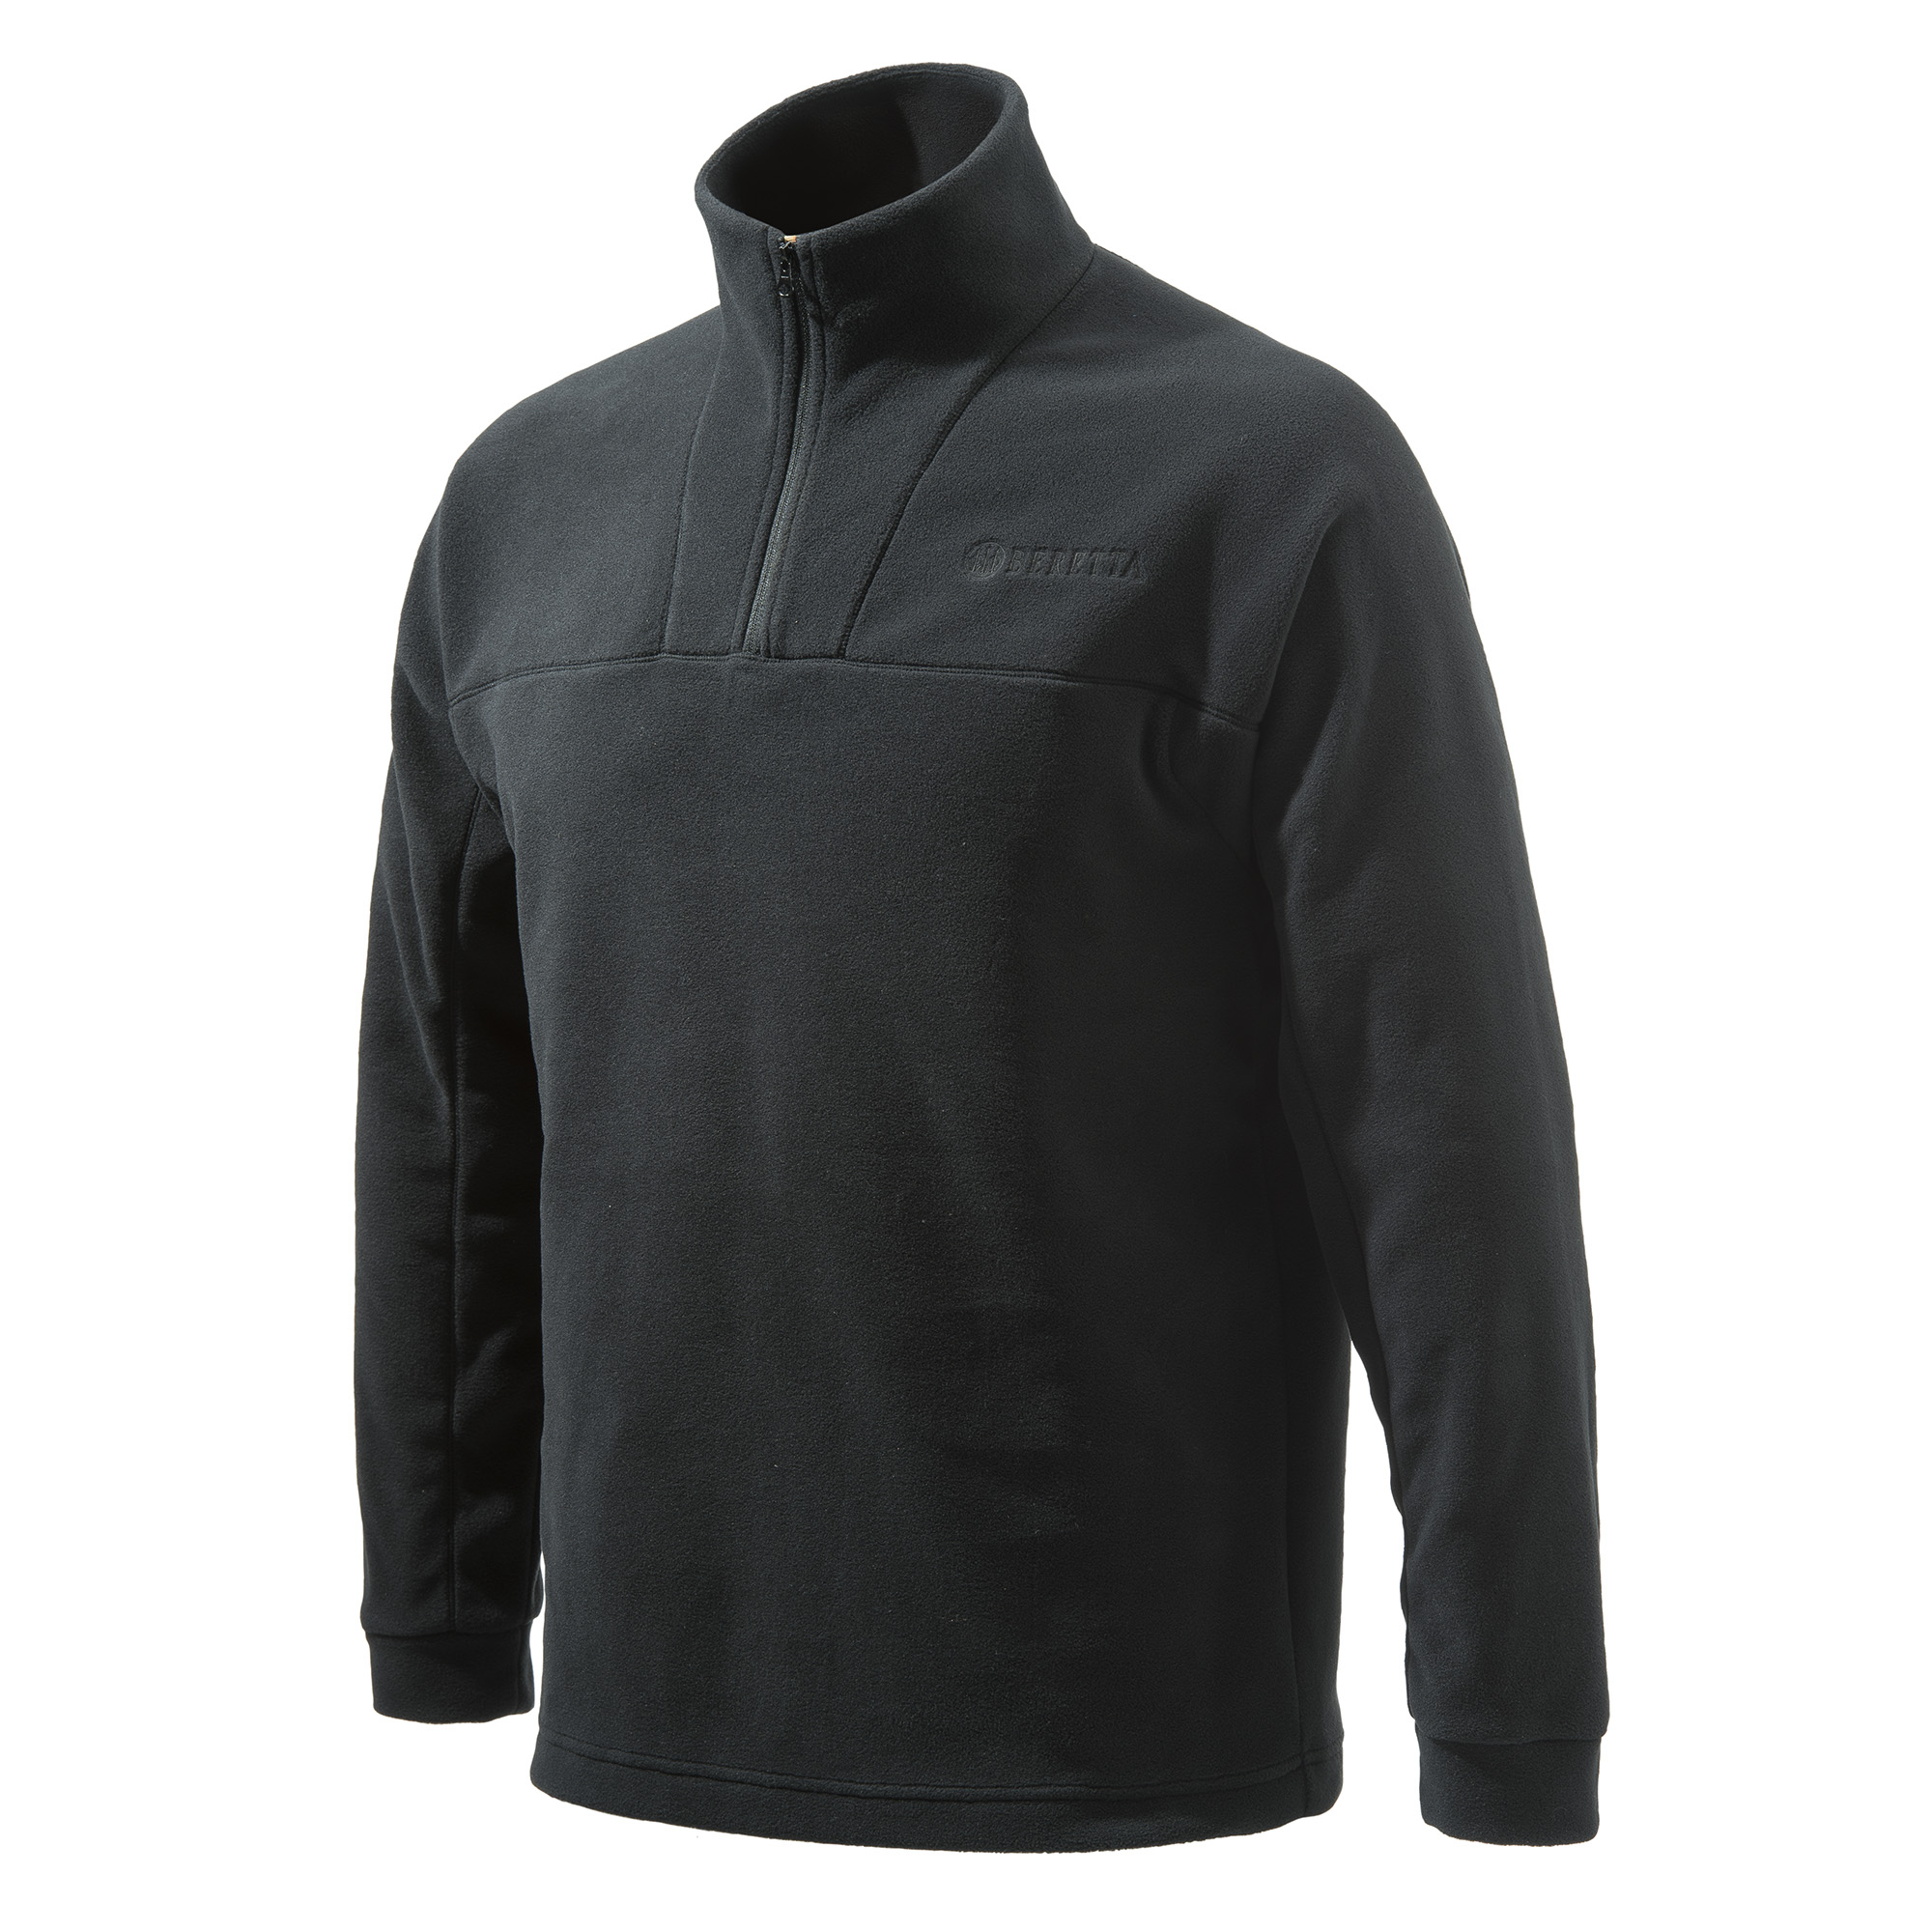 Beretta Half Zip Fleece